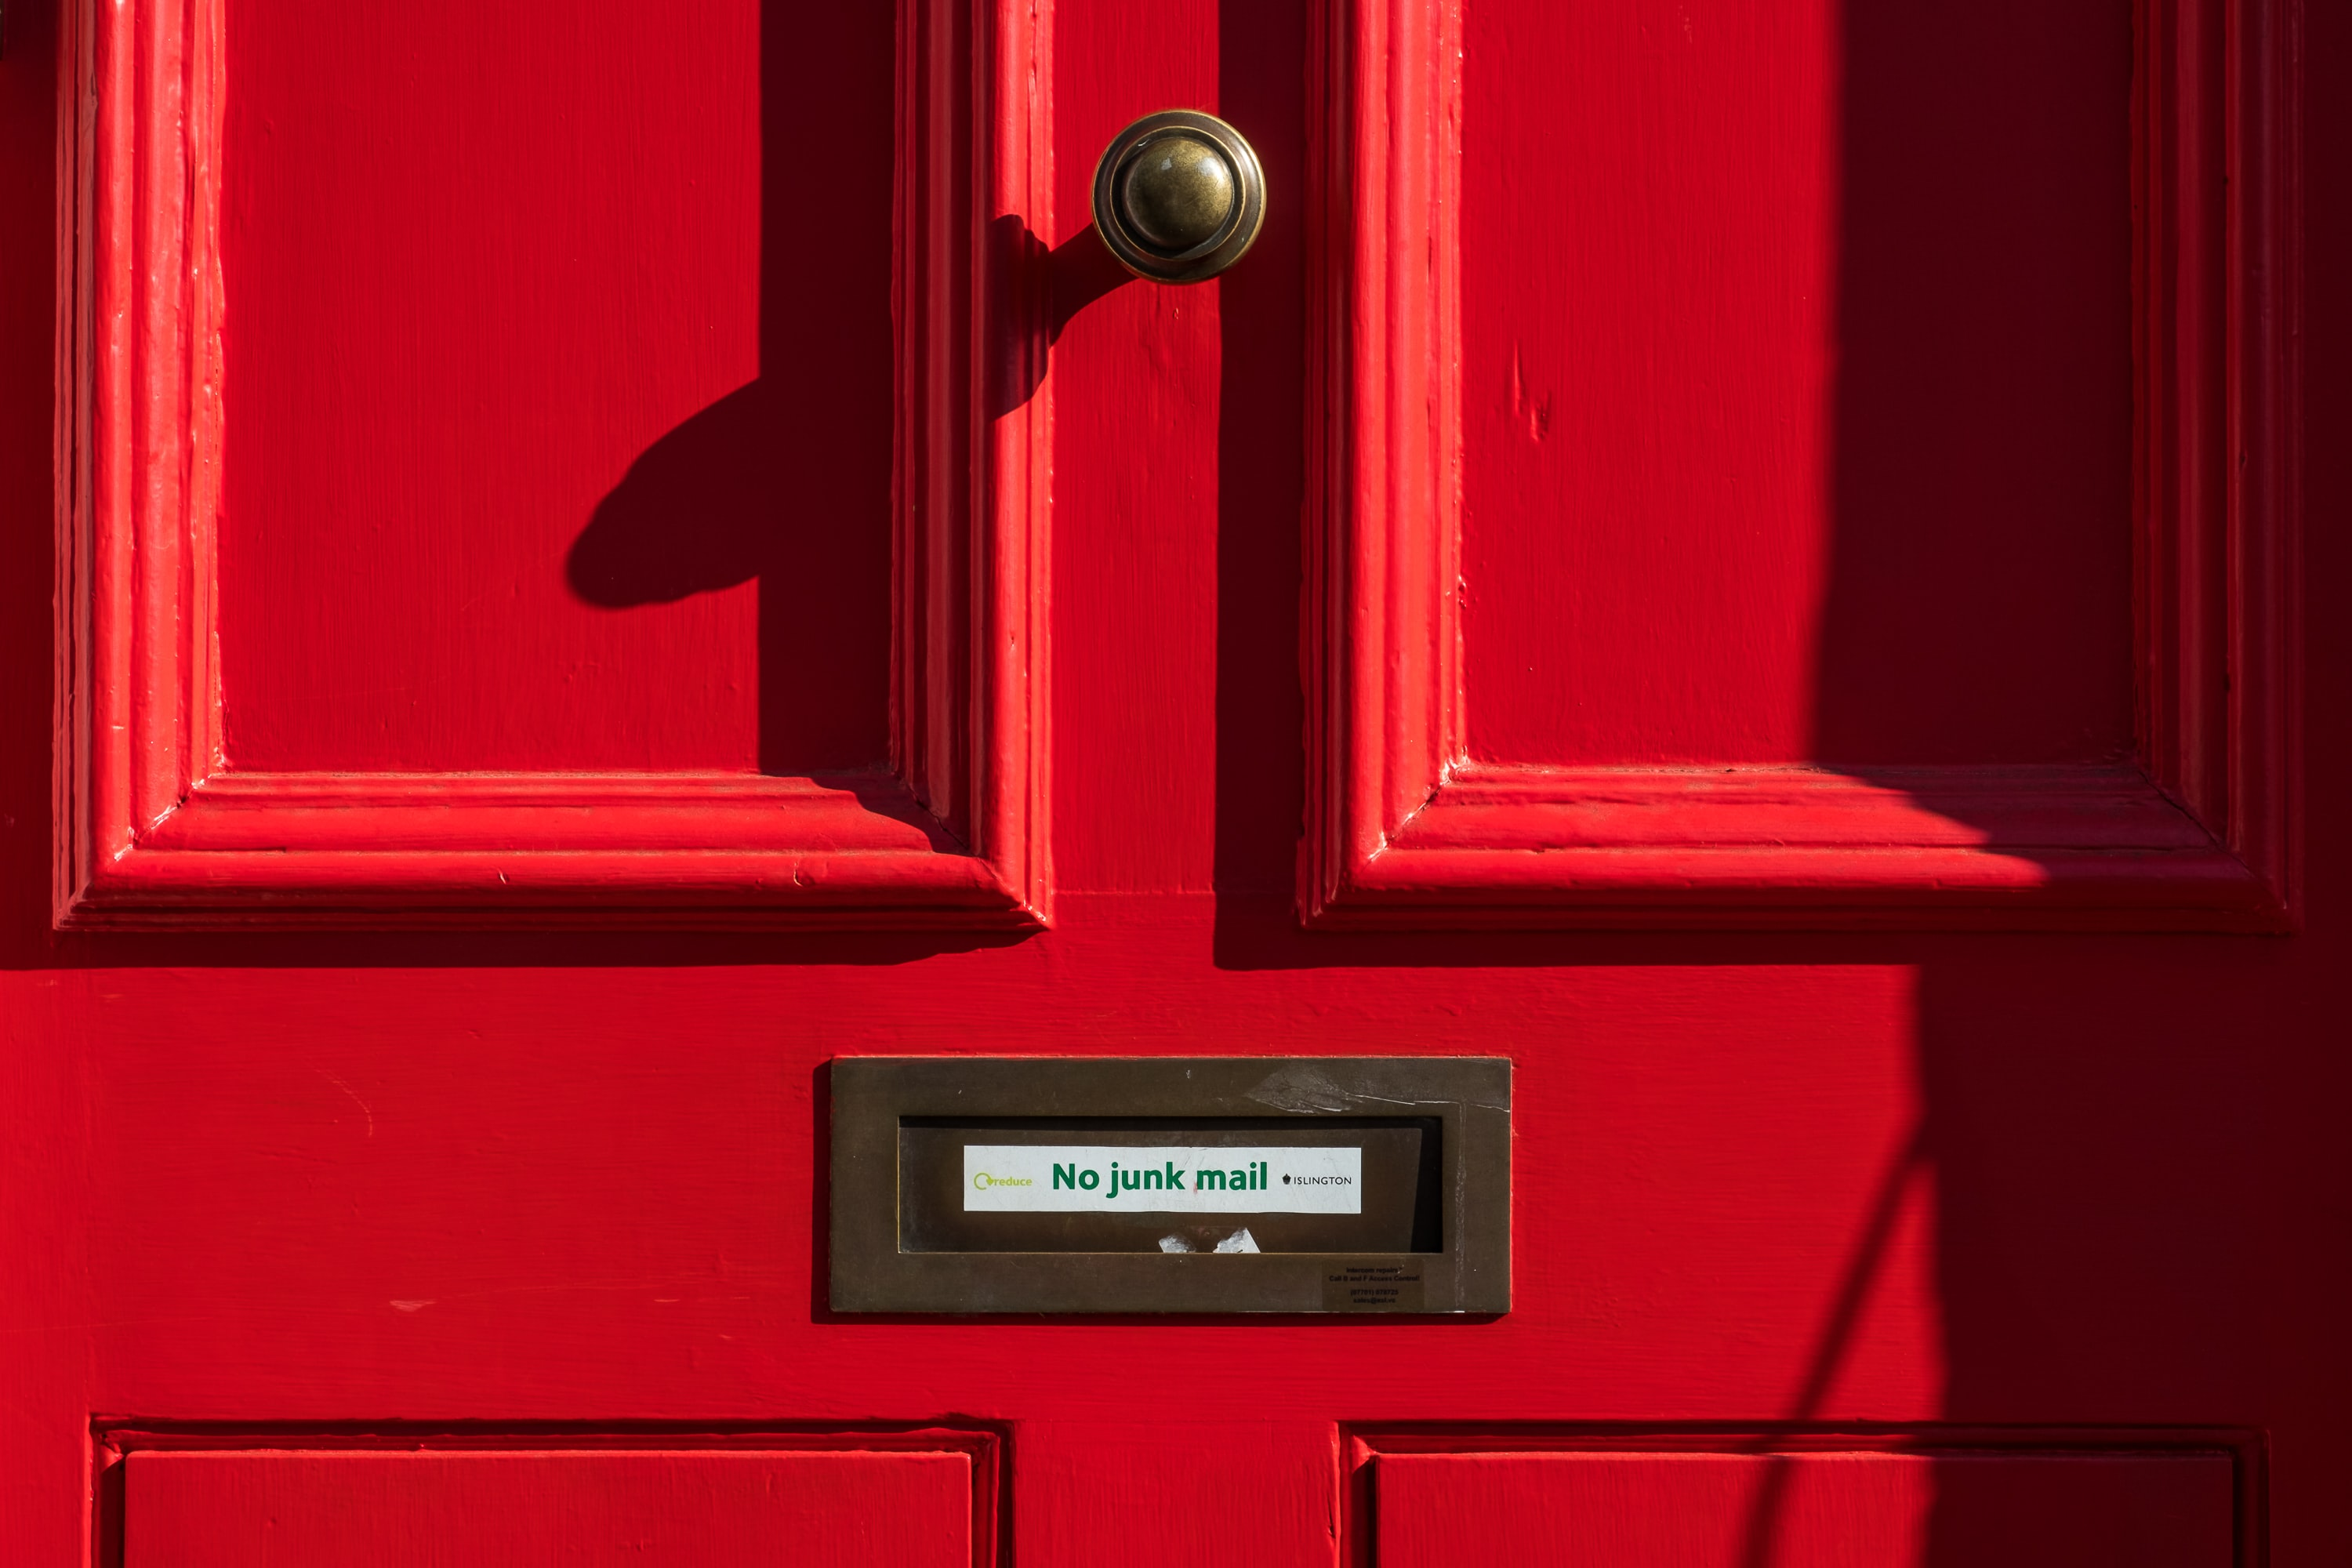 """Closeup of mail slot on red door with sign """"No junk mail"""""""